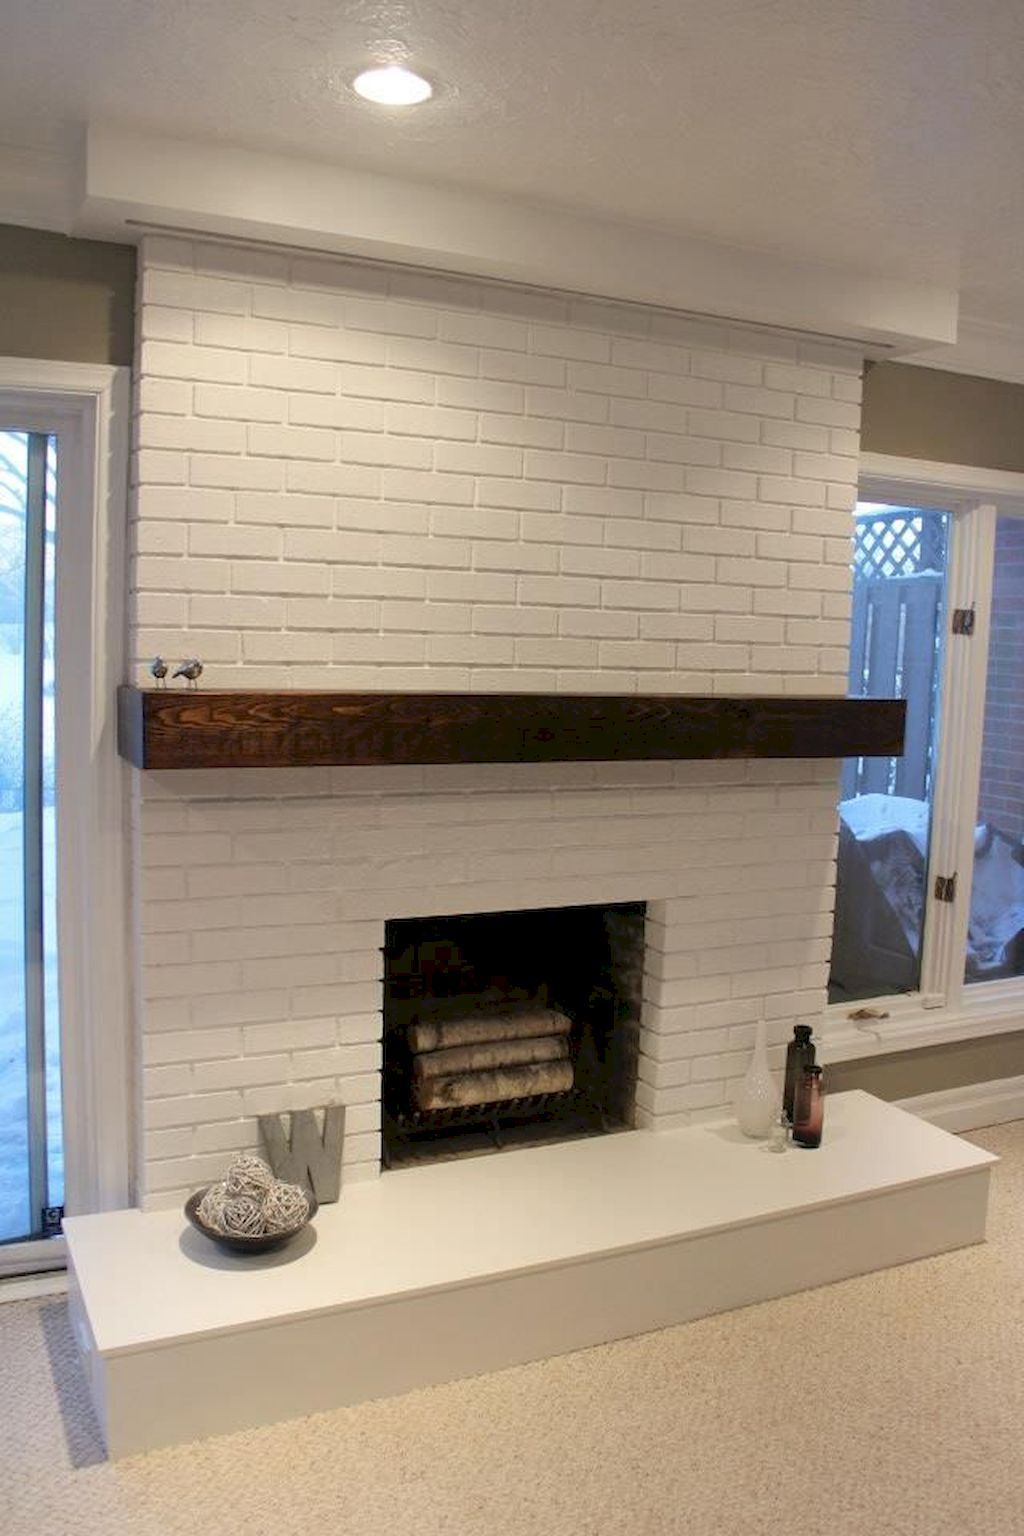 Gorgeous 77 Brick Wall For Interior Space Ideas Buildecor Co White Brick Fireplace Painted Brick Fireplaces Fireplace Remodel